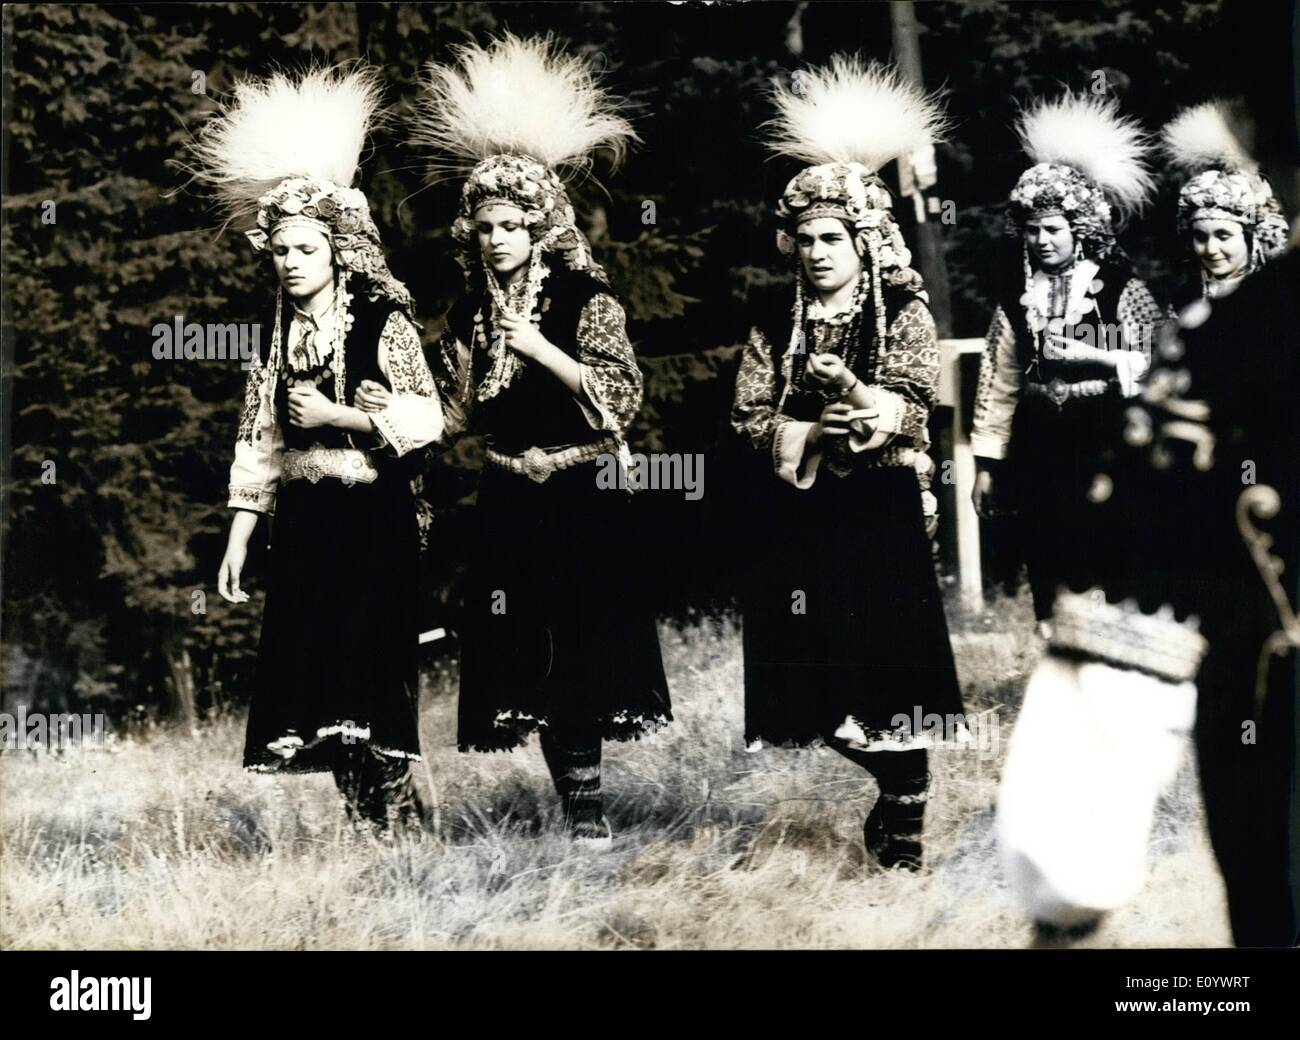 Aug. 08, 1971 - Folklore Festival. Photo shows Girls in beautiful national costumes. - Stock Image